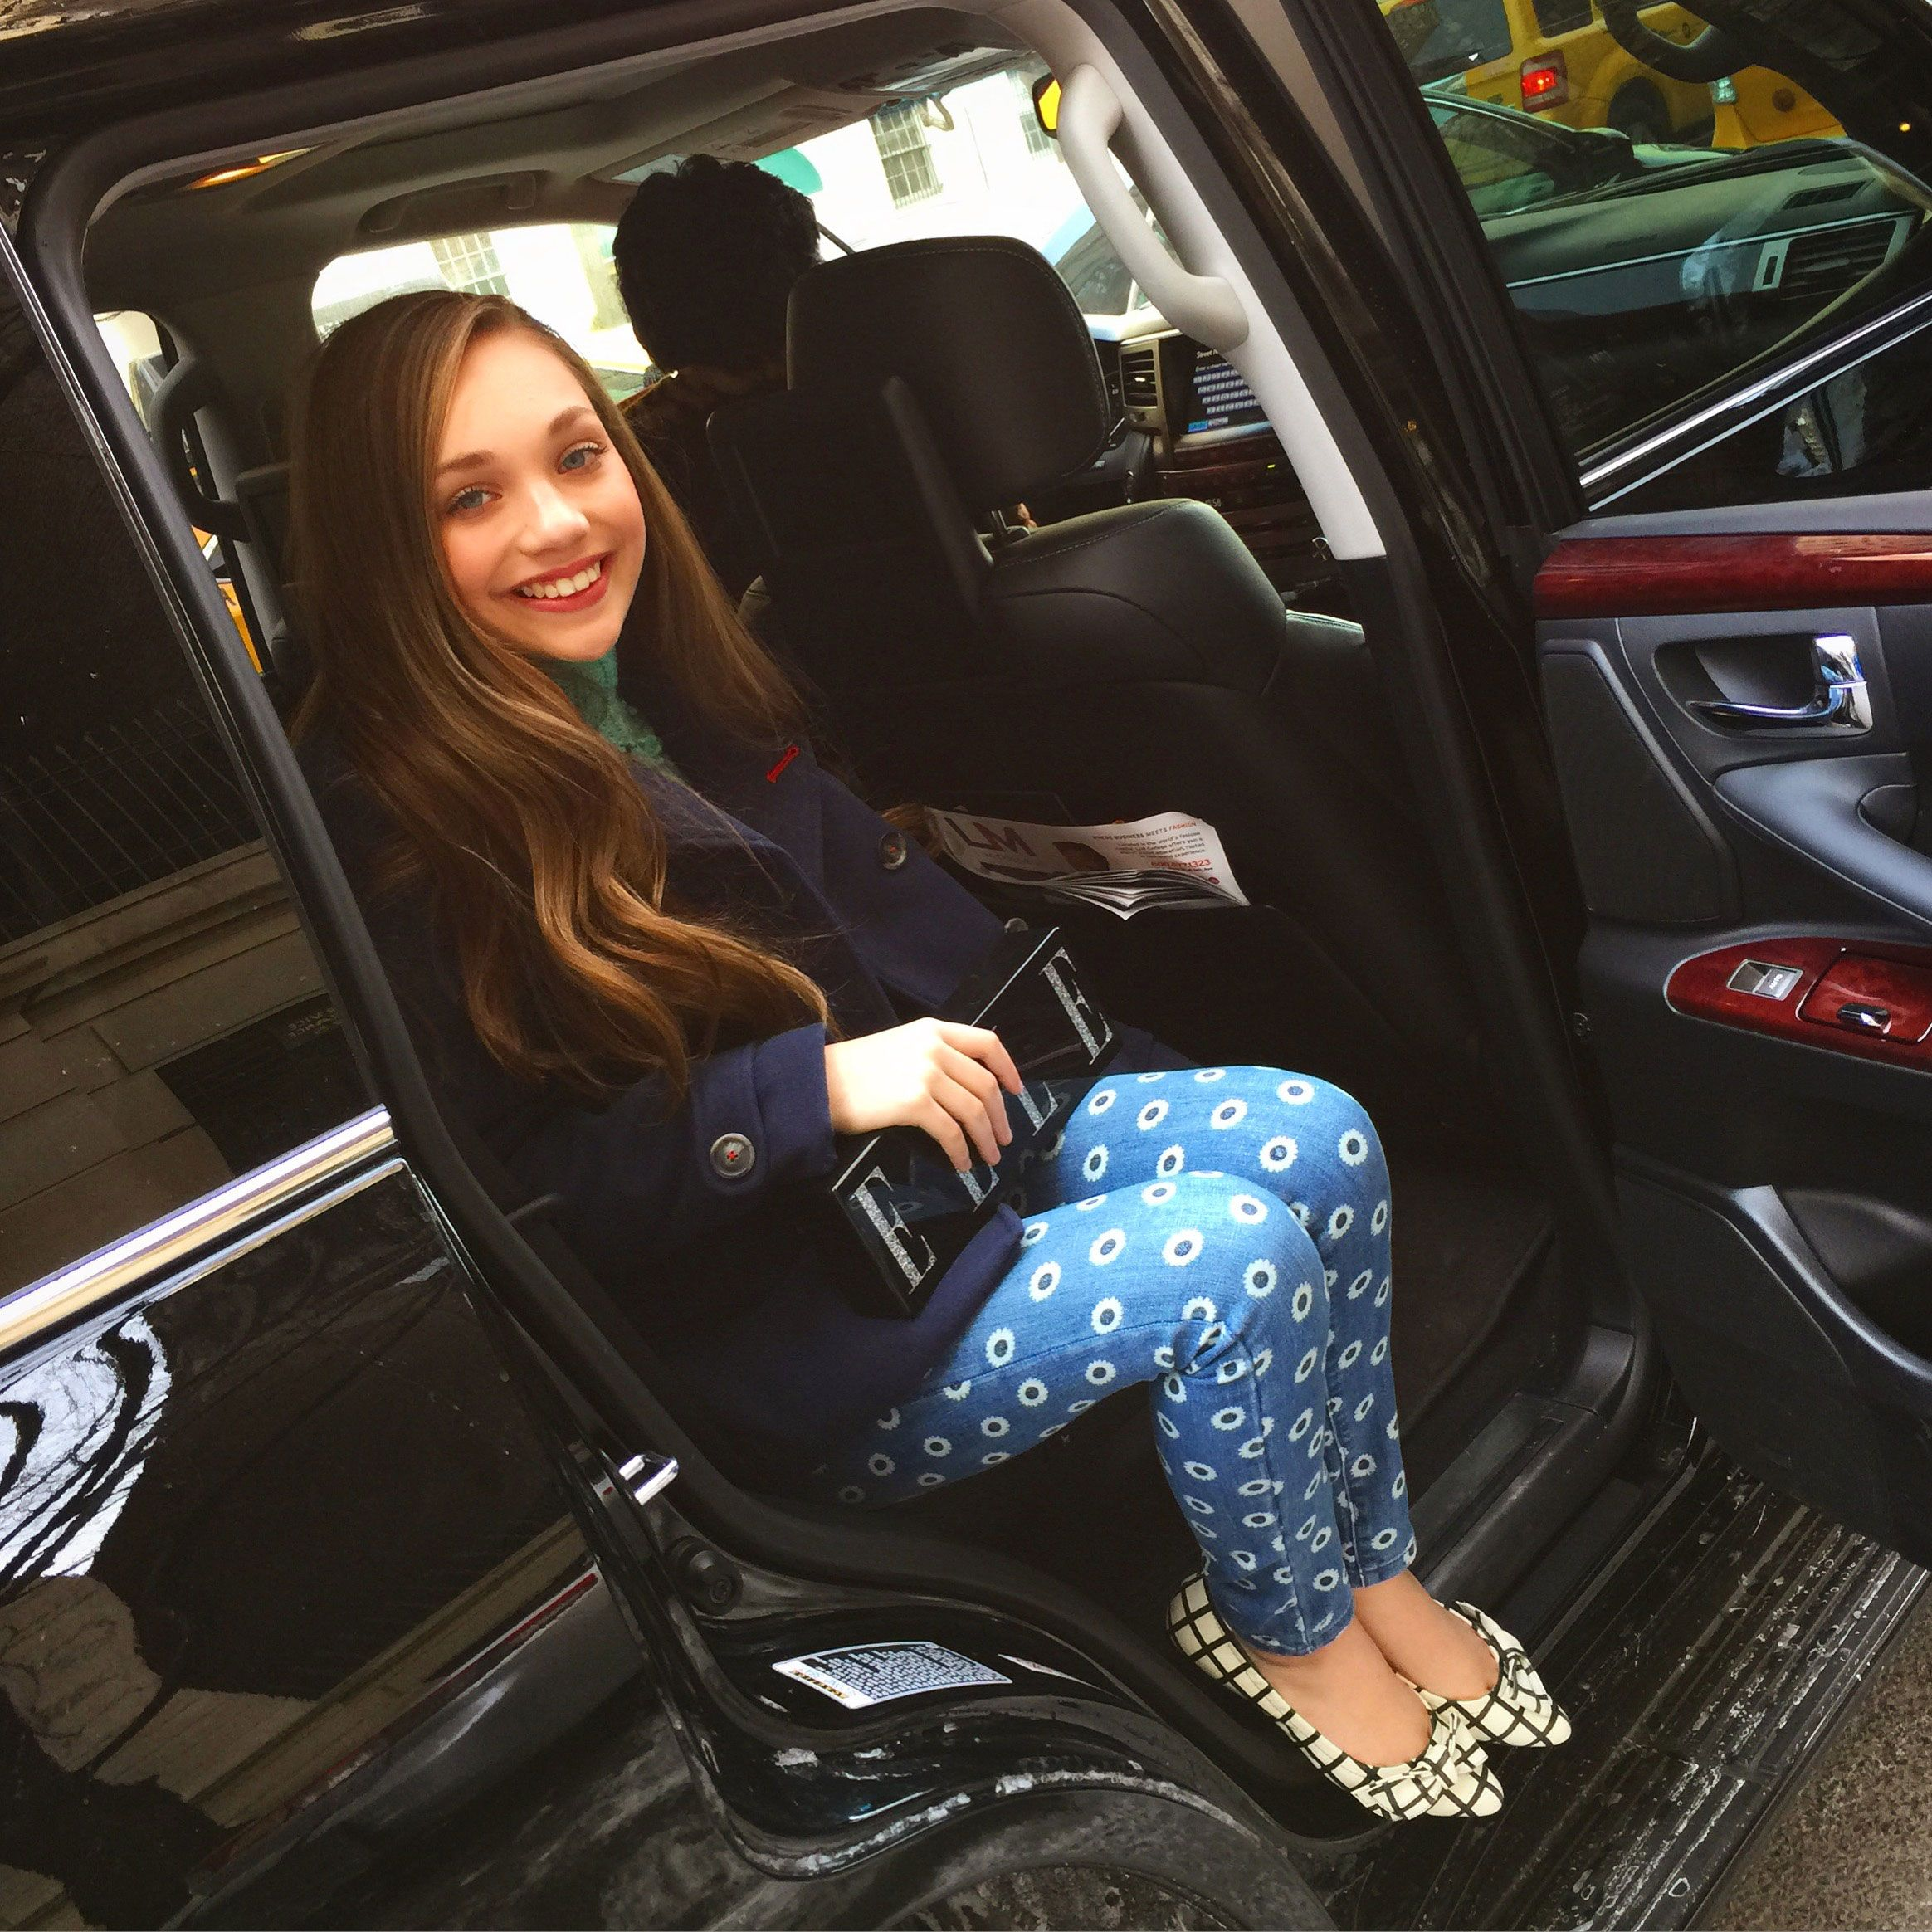 Day one! Let's go! Here I am arriving to my first show of the day in the Milk Made Lexus SUV.